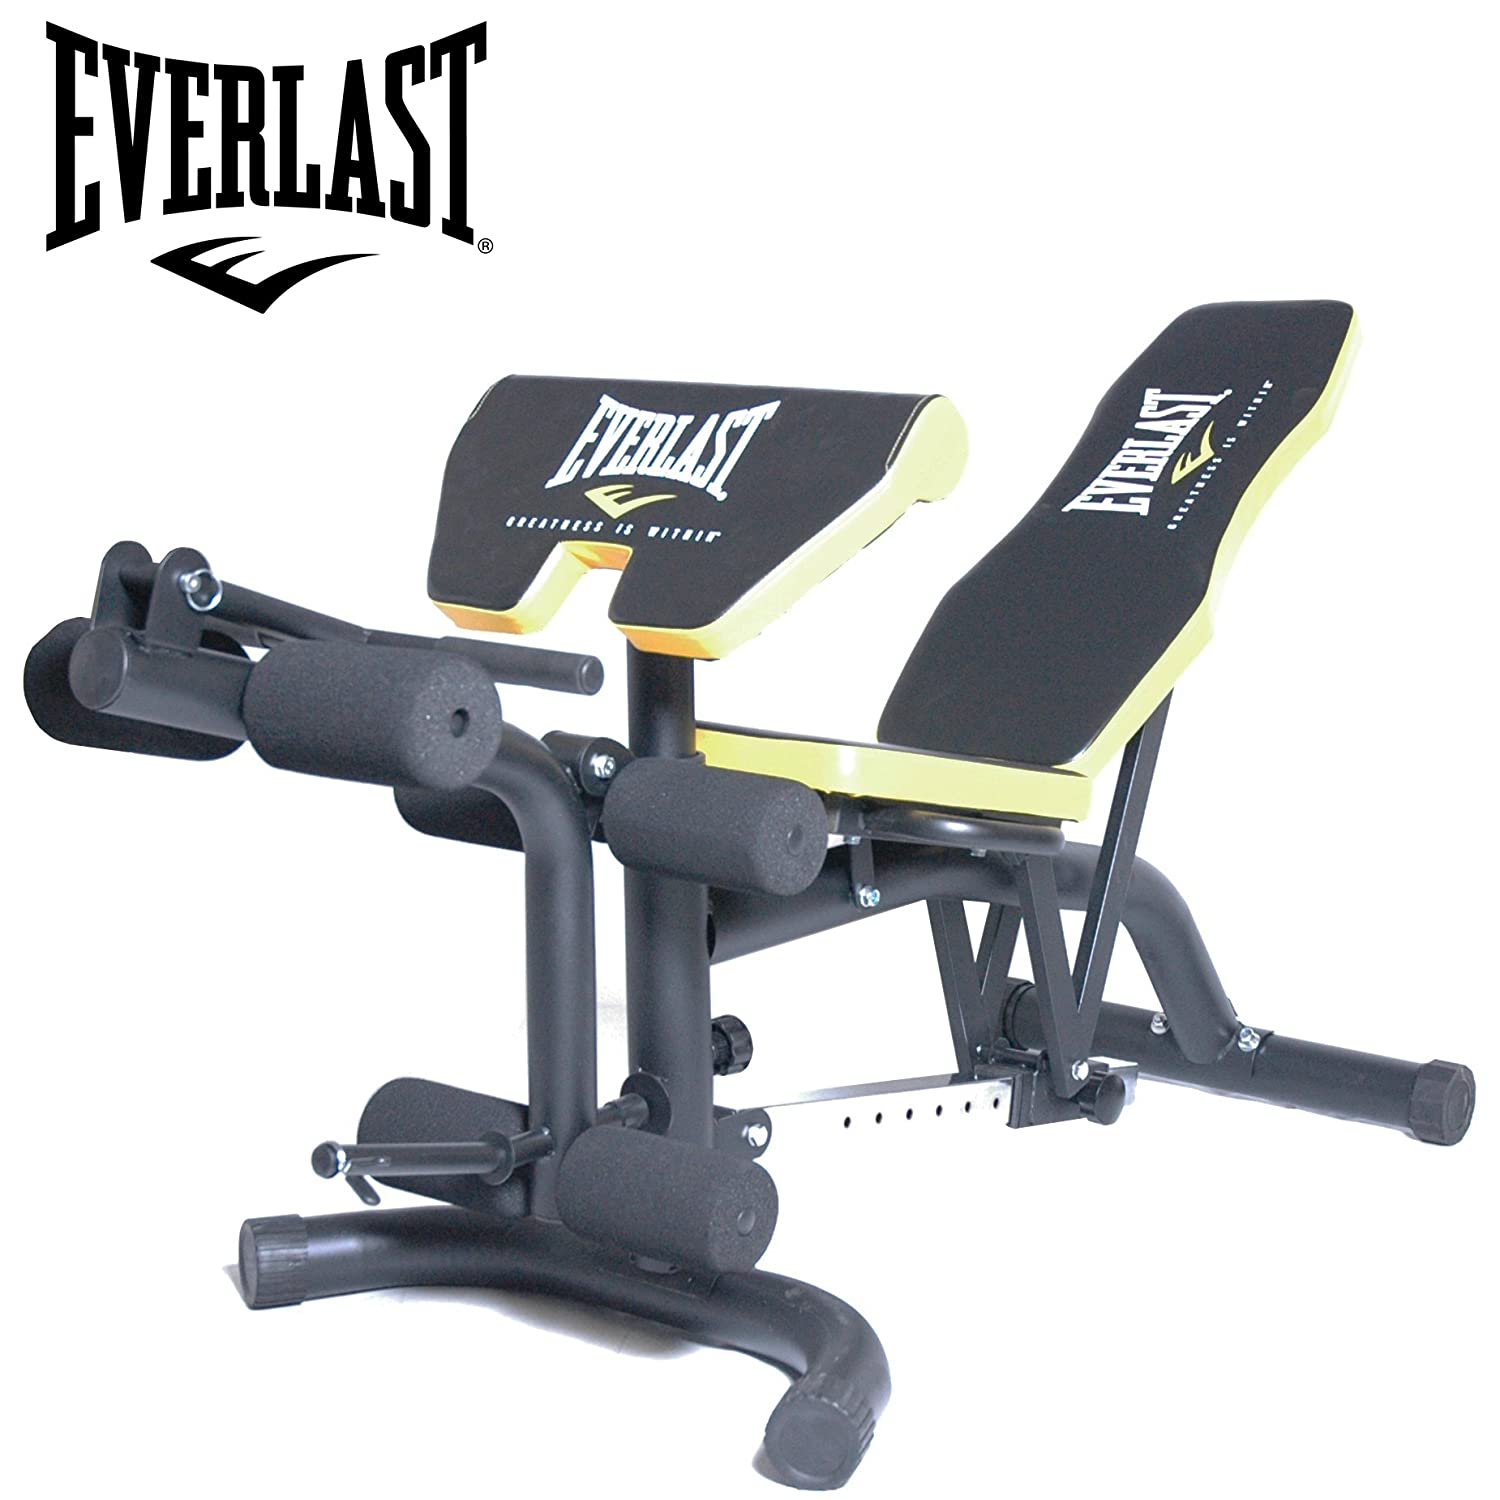 Everlast Olympic Weight Bench With Leg Extension & Preacher Pad:  Amazon.co.uk: Sports & Outdoors